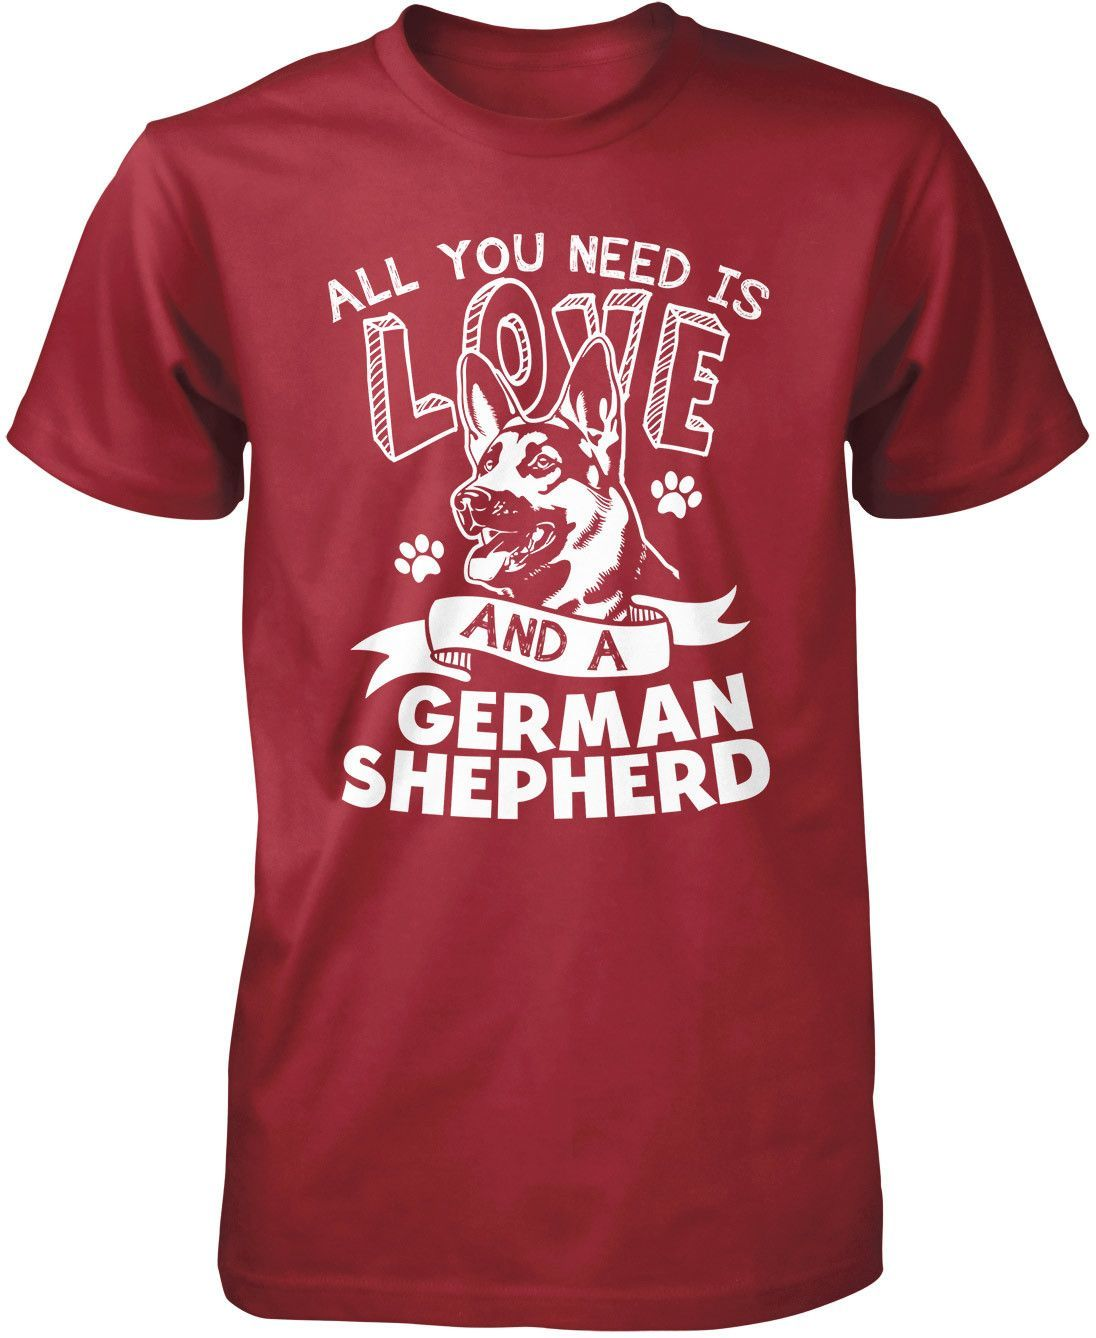 All you need is love and a german shepherd tshirt